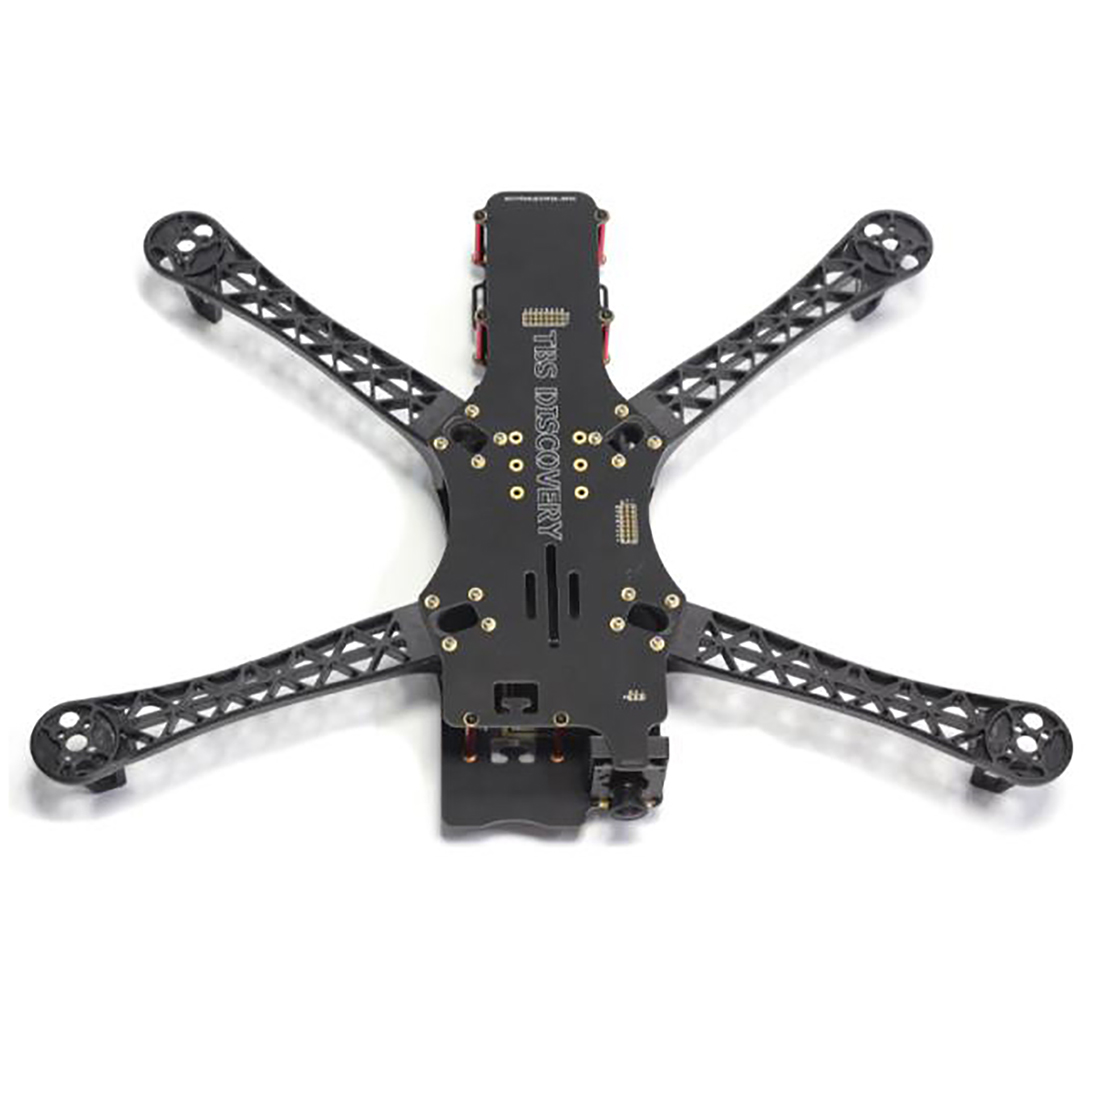 Alien Locusts PCB Frame Team Blacksheep TBS Discovery Frame Wheelbase 500mm RC Quadcopter Accessories жаровня scovo сд 013 discovery